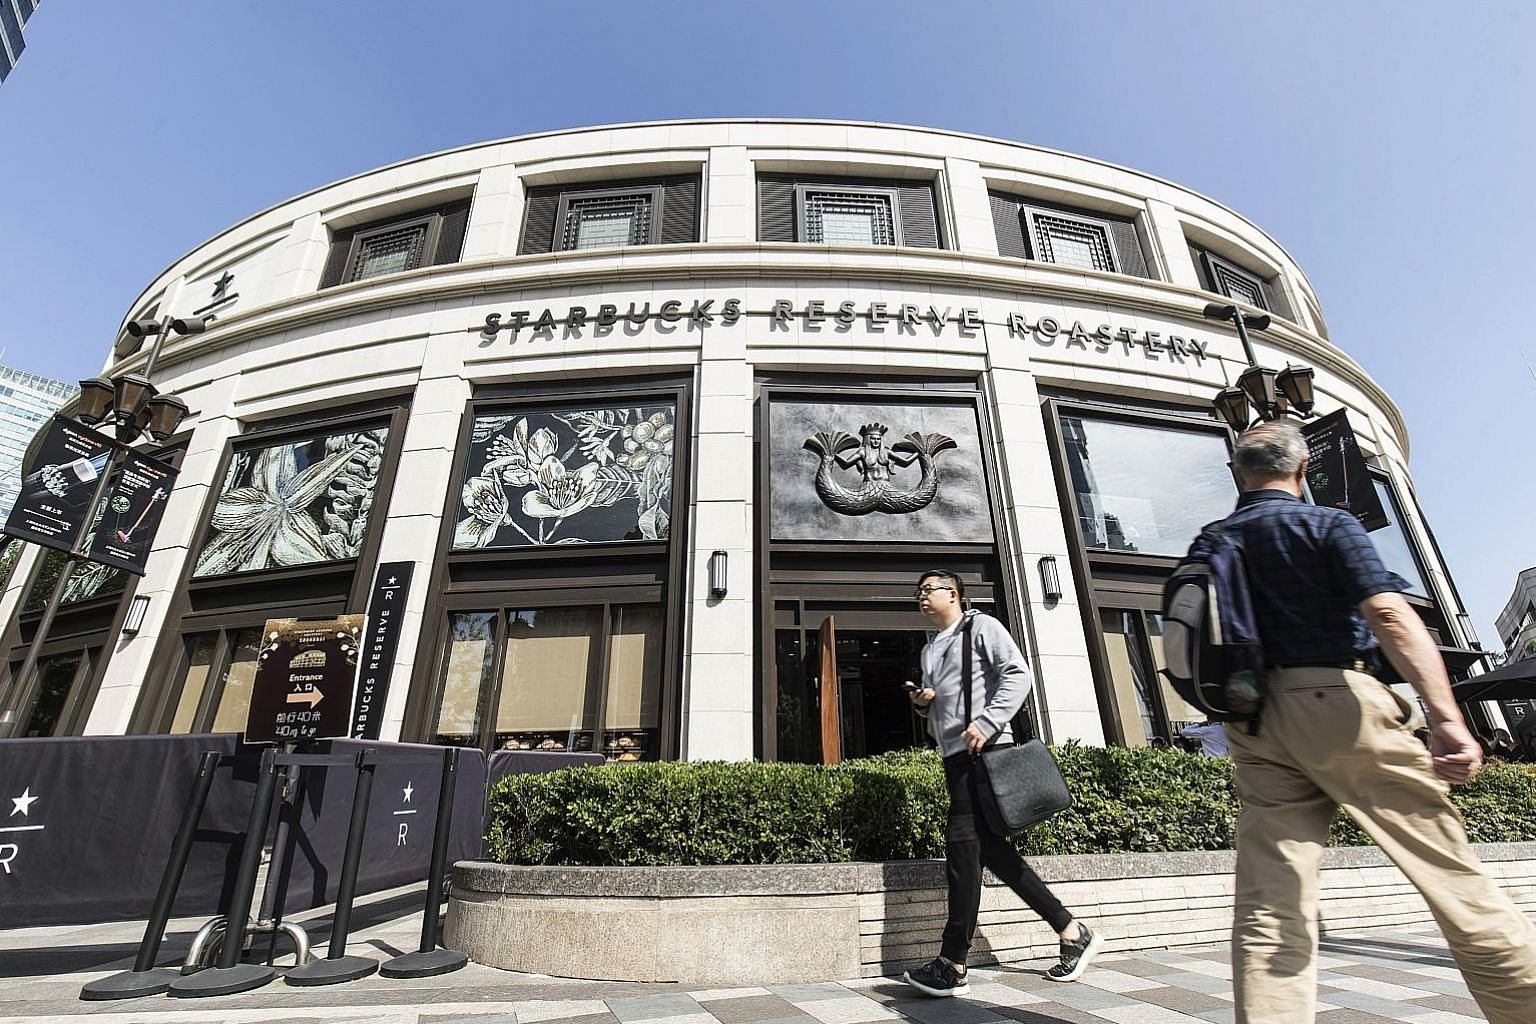 Starbucks' Reserve Roastery store in Shanghai. The coffee giant plans to have 6,000 stores on the mainland by 2022, compared with a previous target of 5,000 by 2021.